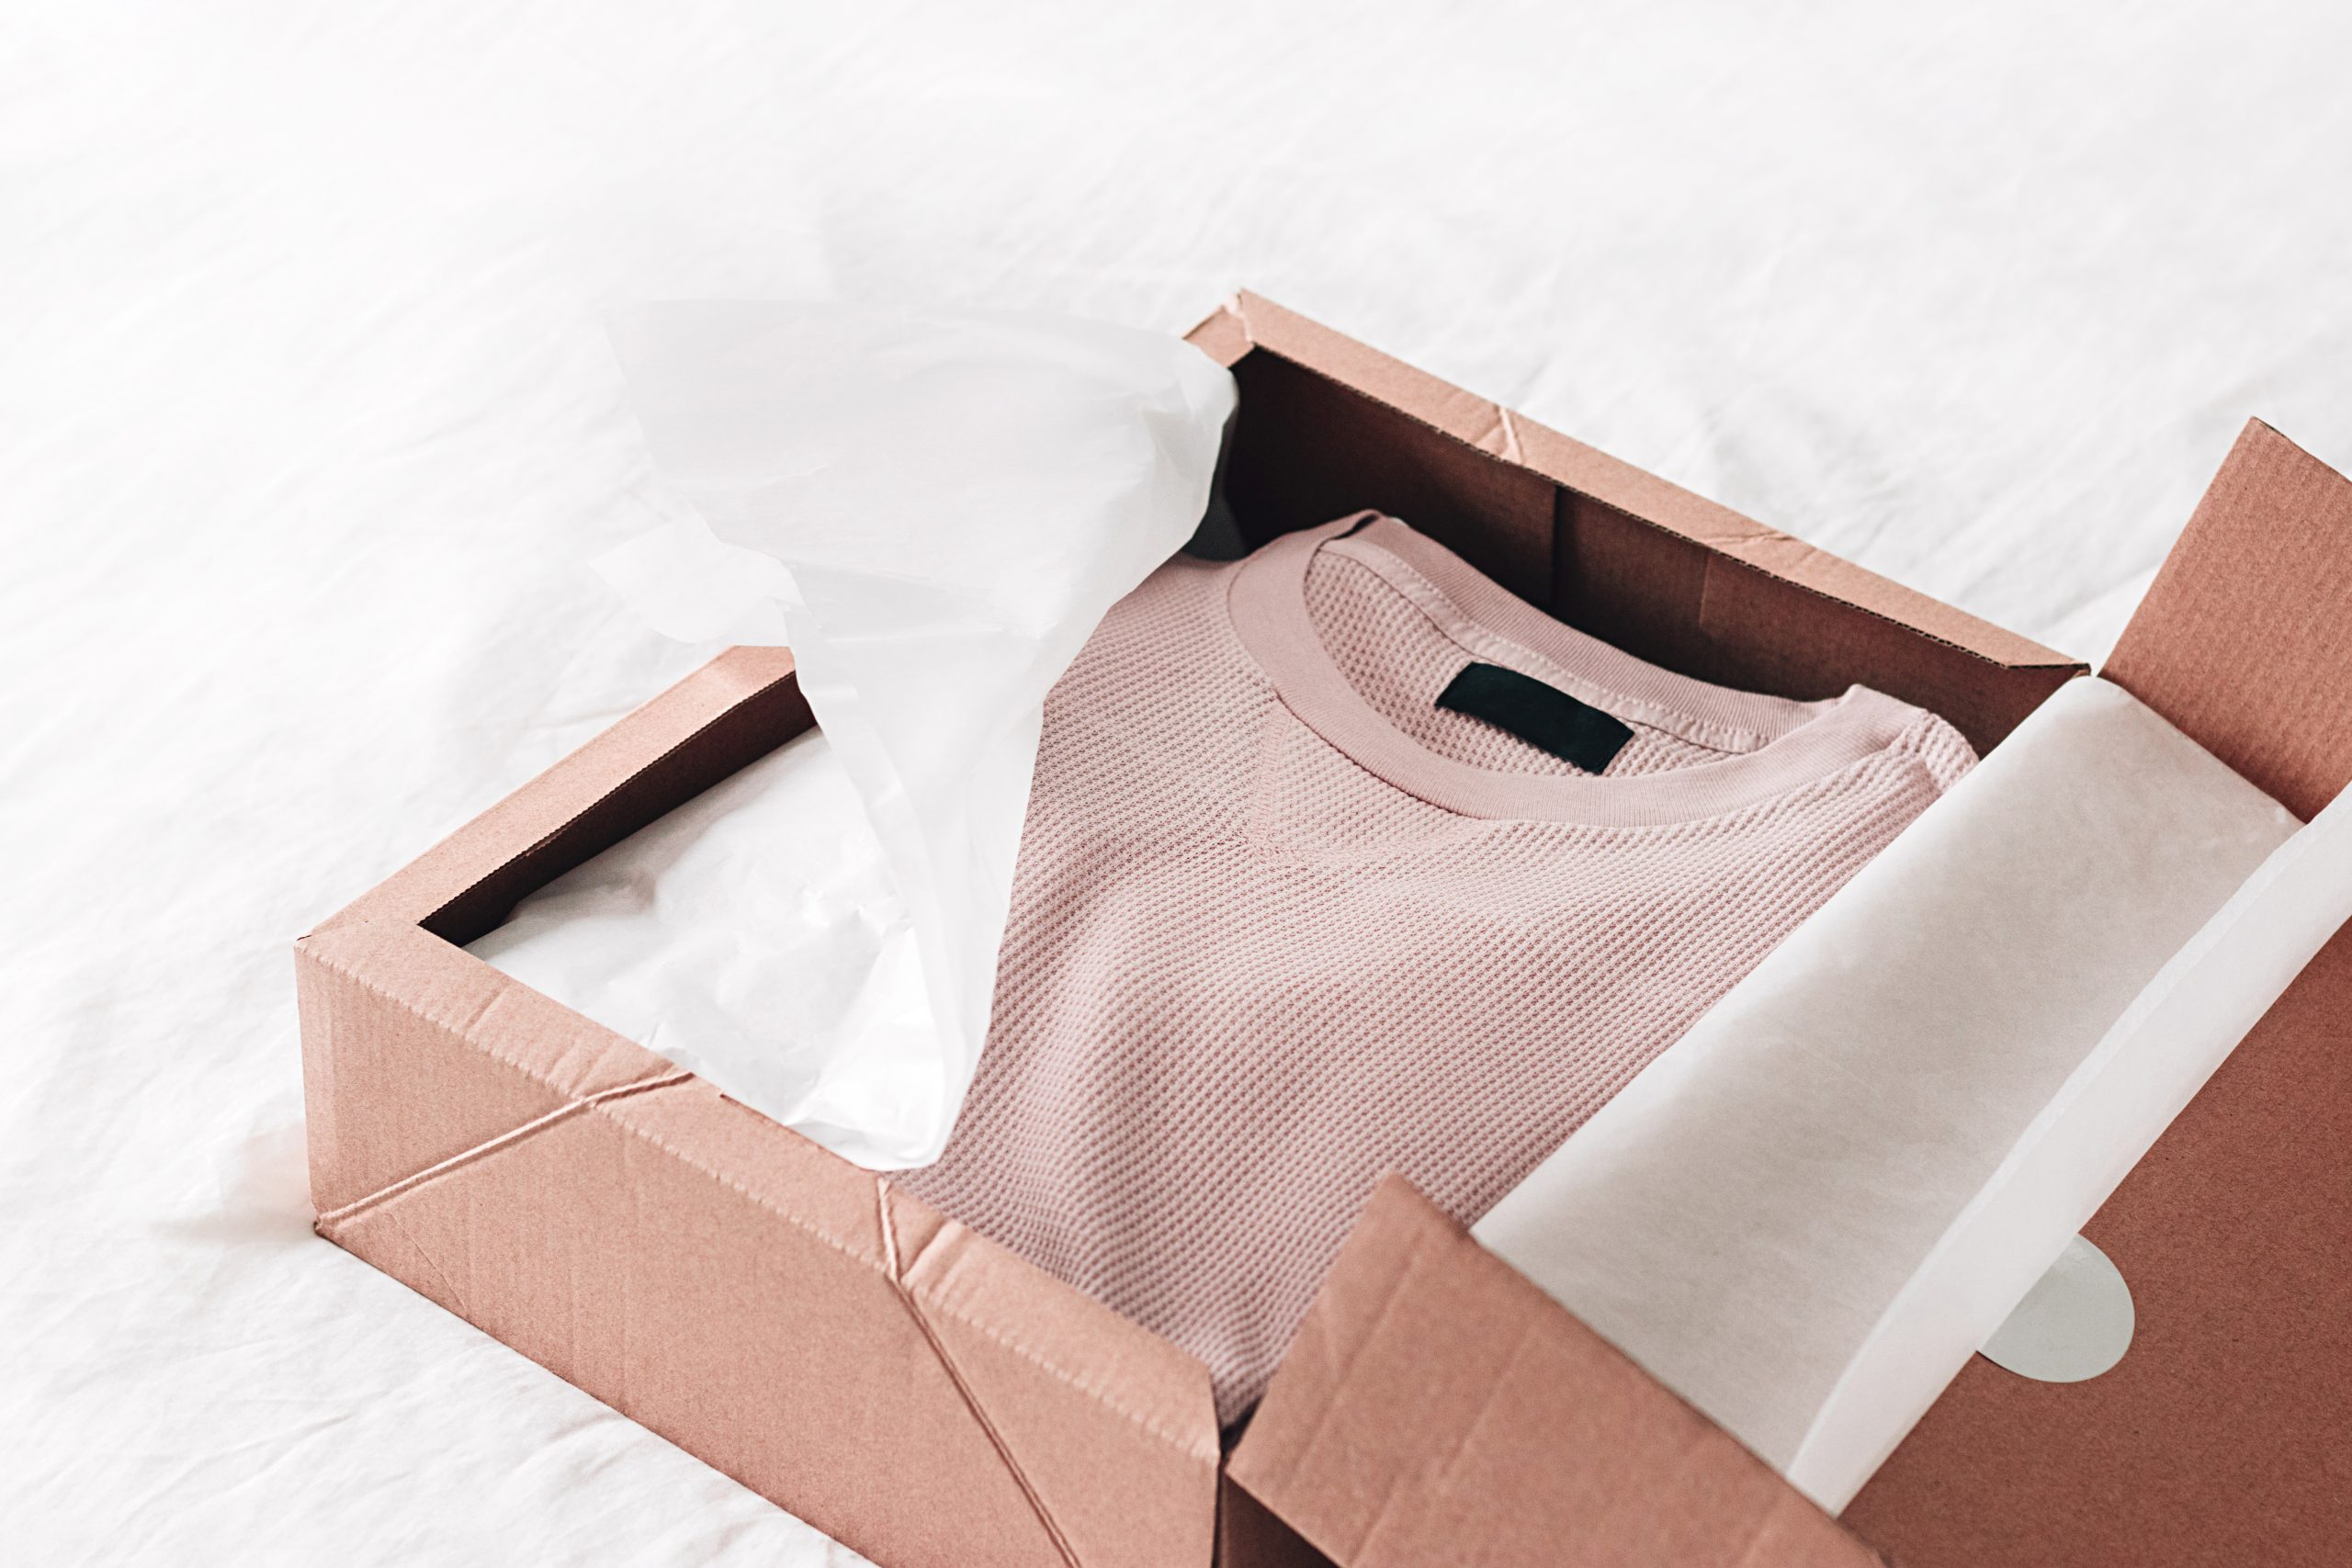 Mystery fashion boxes leave customers furious